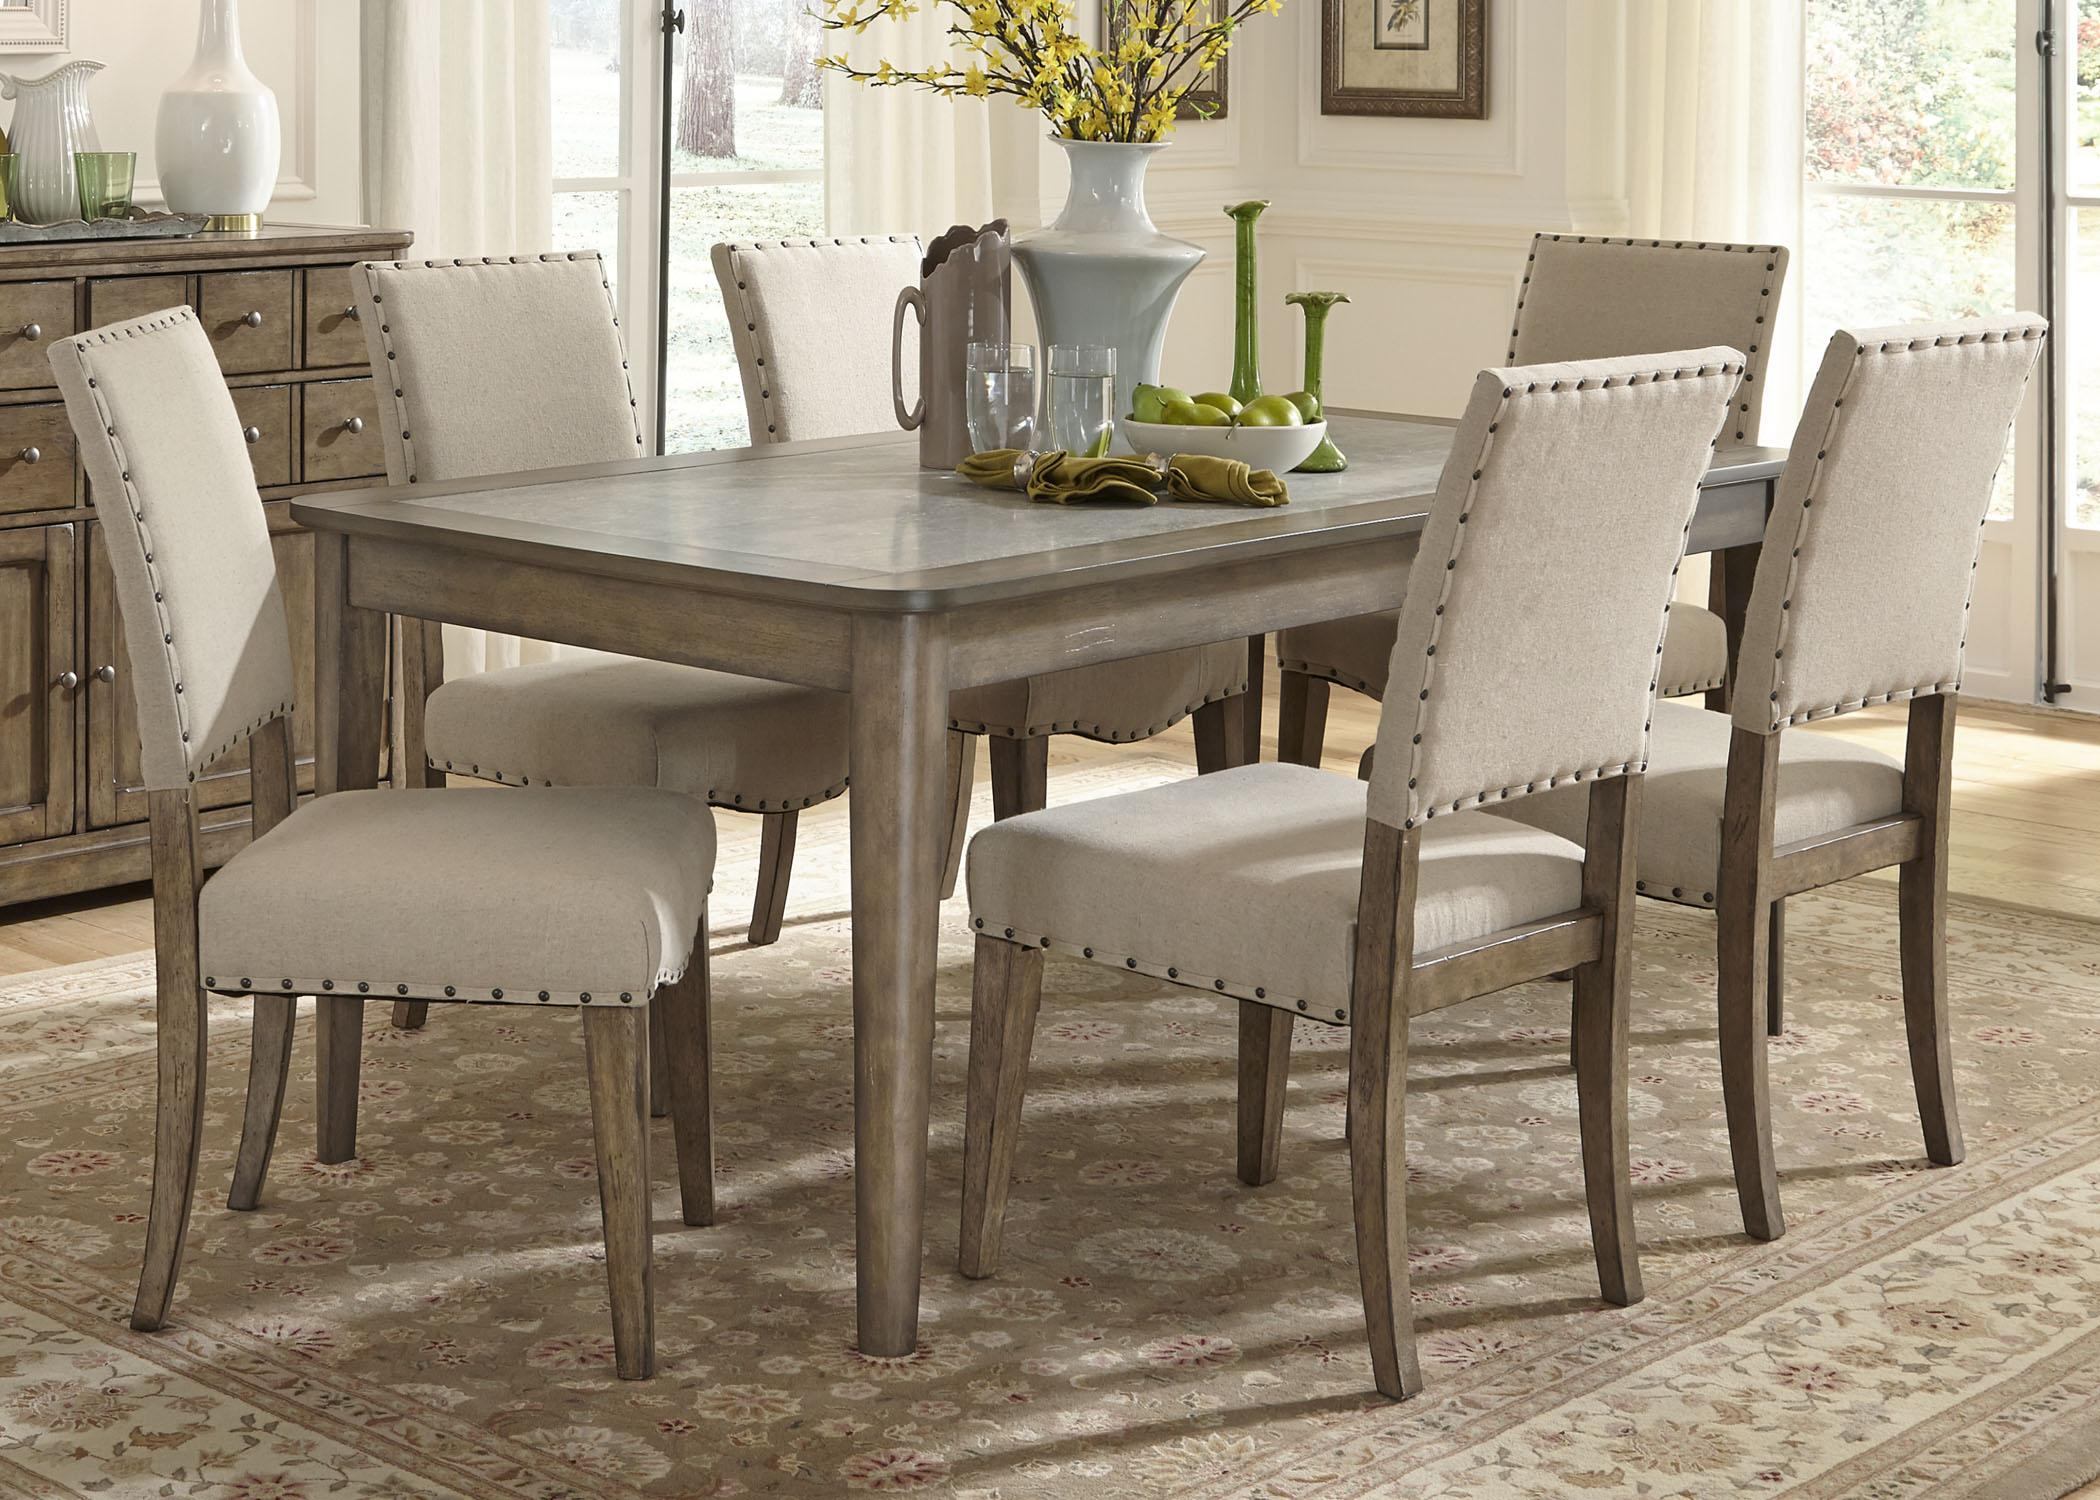 Casual Rustic 7 Piece Dining Table and Chairs Set : rectangular dining table sets - pezcame.com